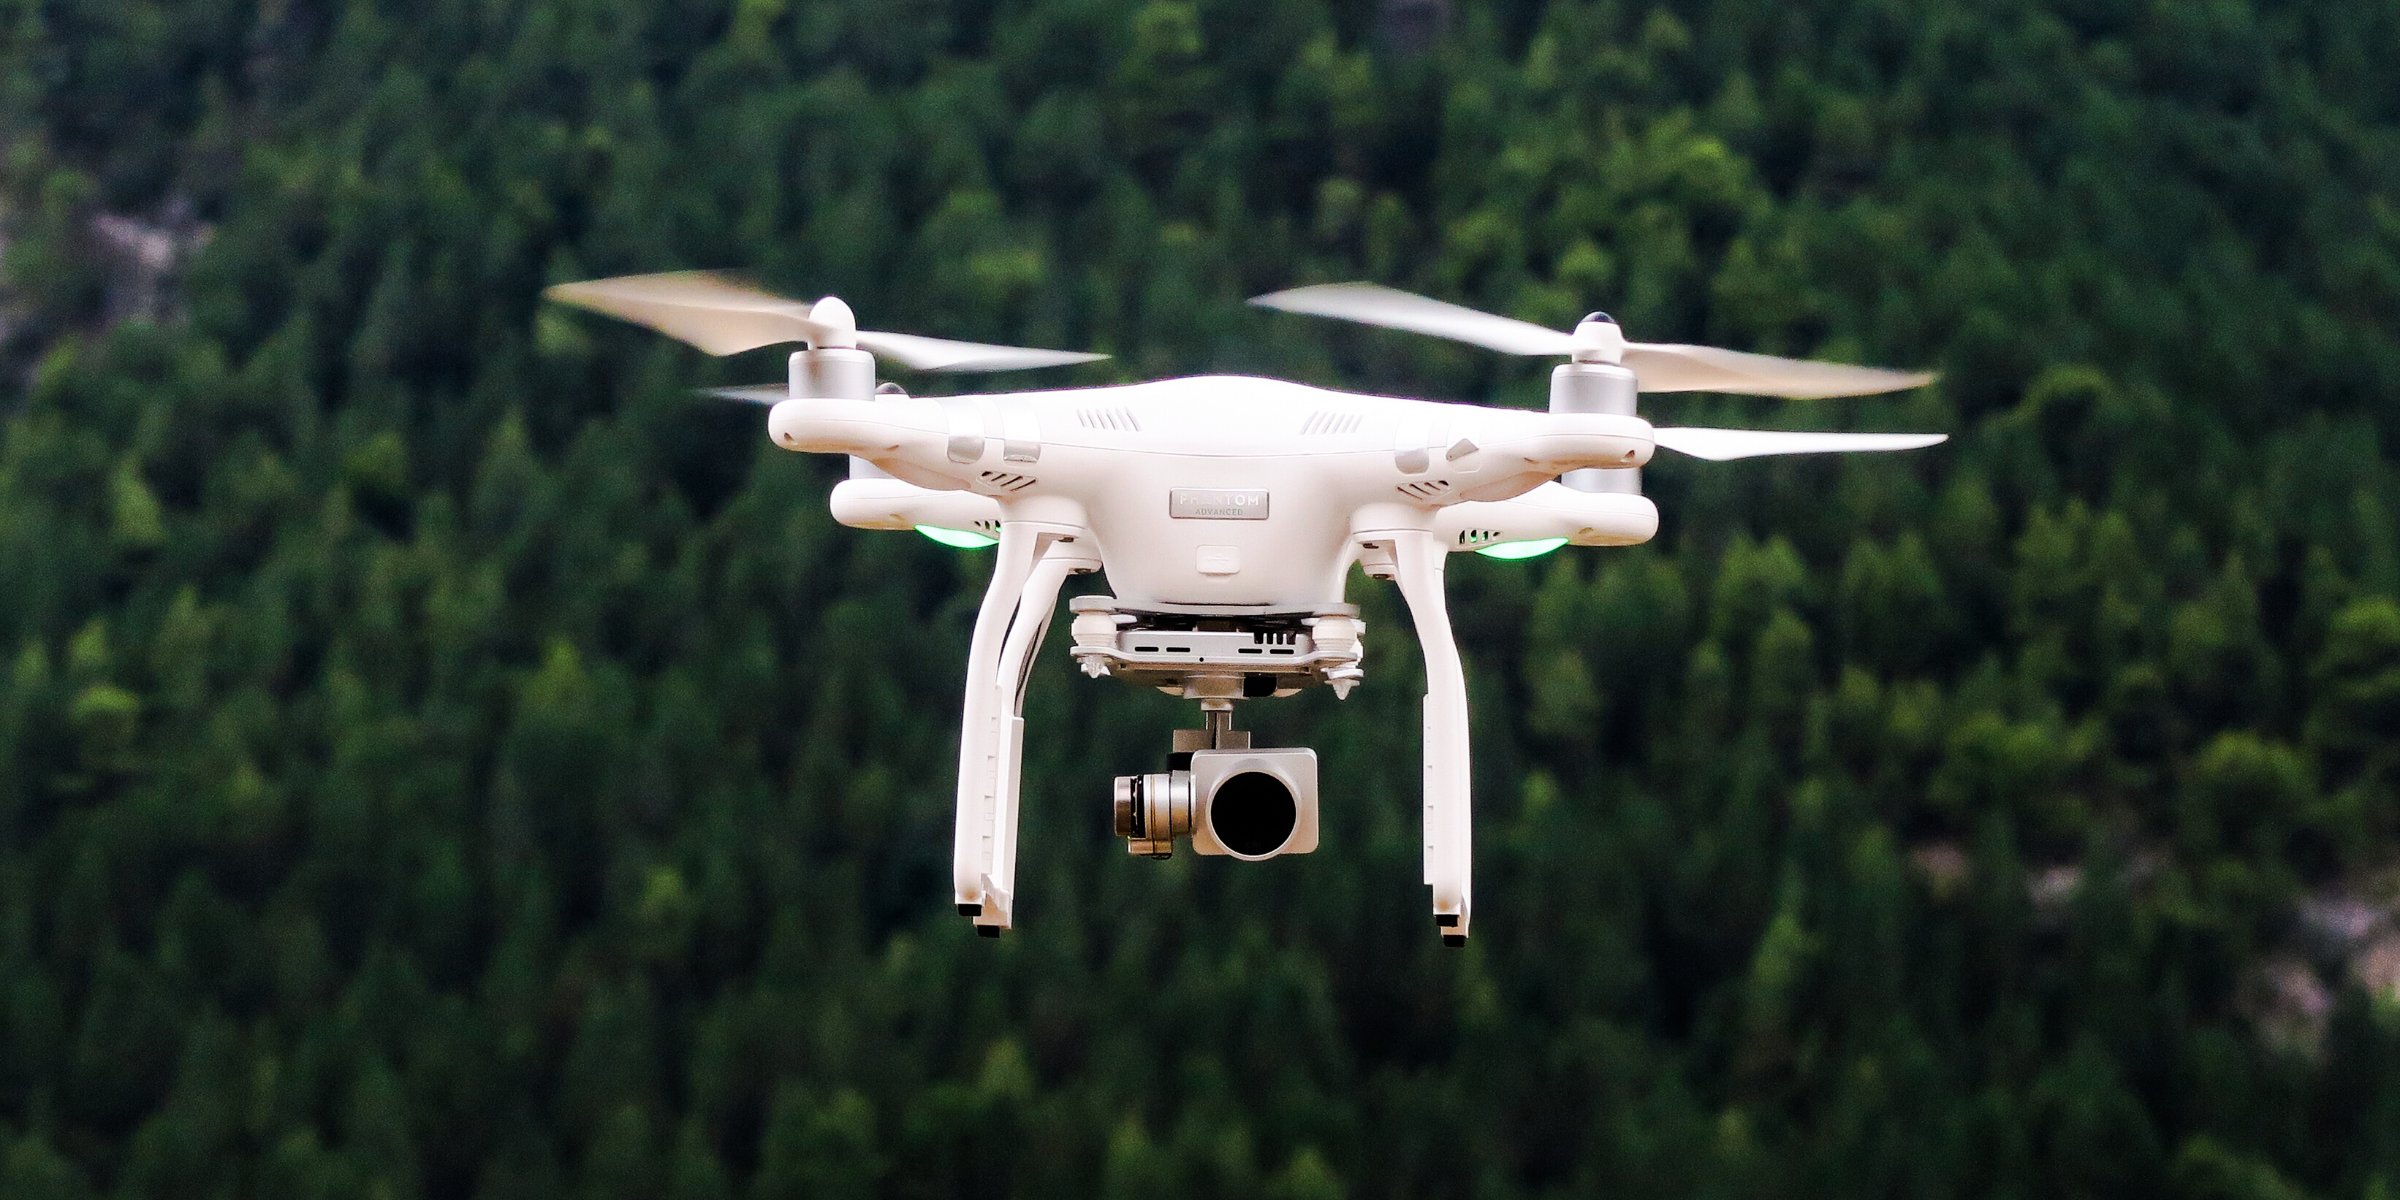 Drones (also known as Unmanned Aerial Vehicles, or UAVs) are changing the way work gets done in the construction industry.